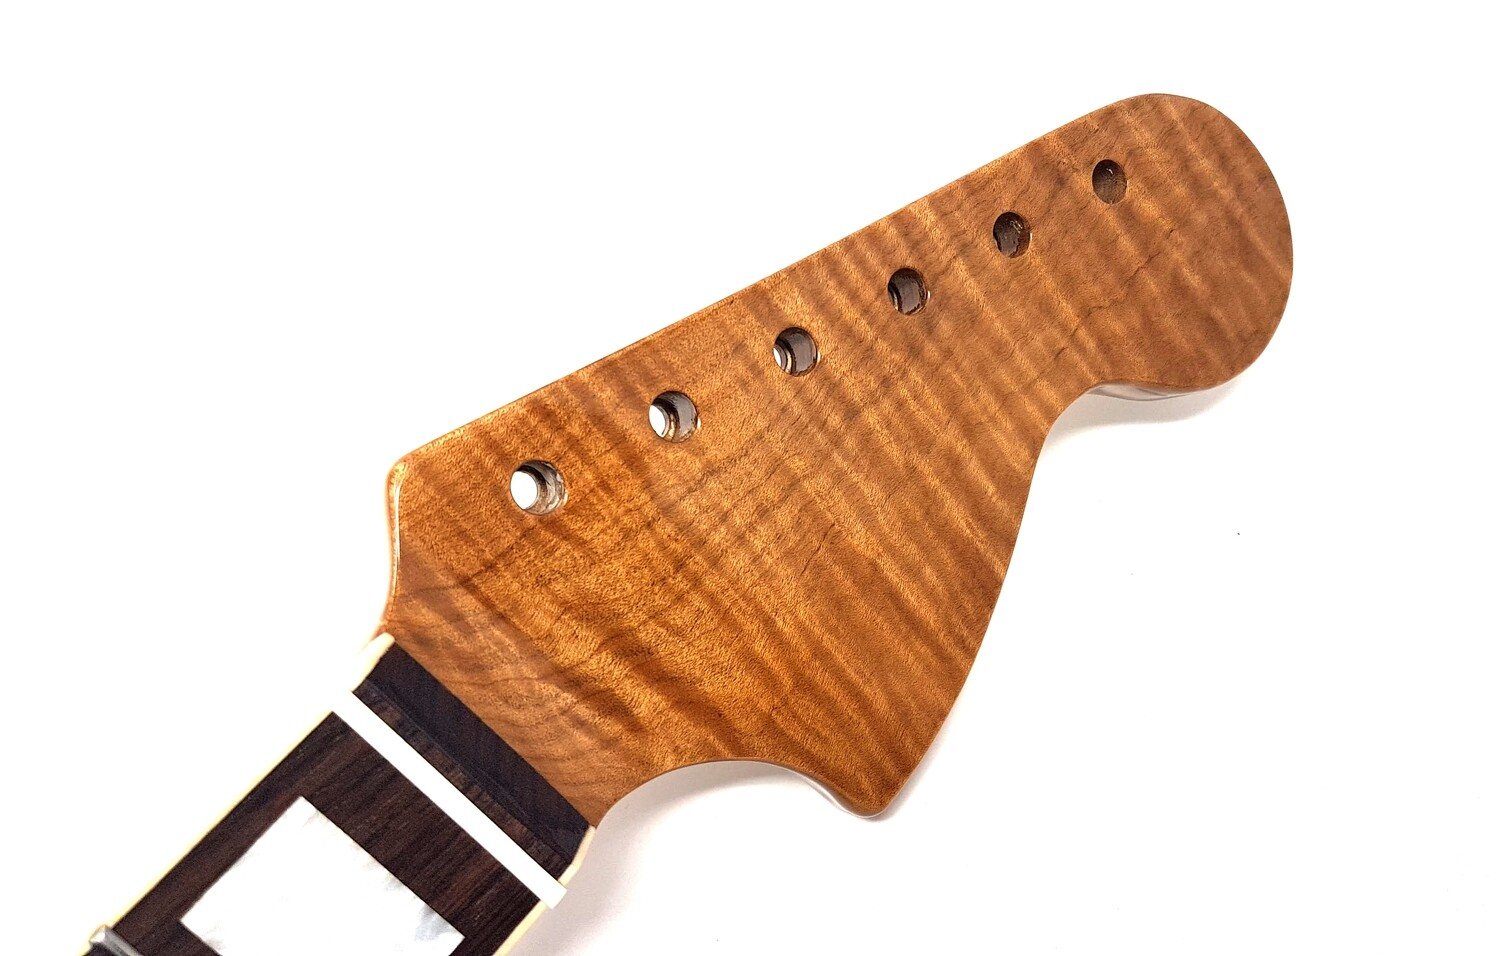 Brio CBS Roasted Highly Flamed Maple Rosewood Neck Roasted